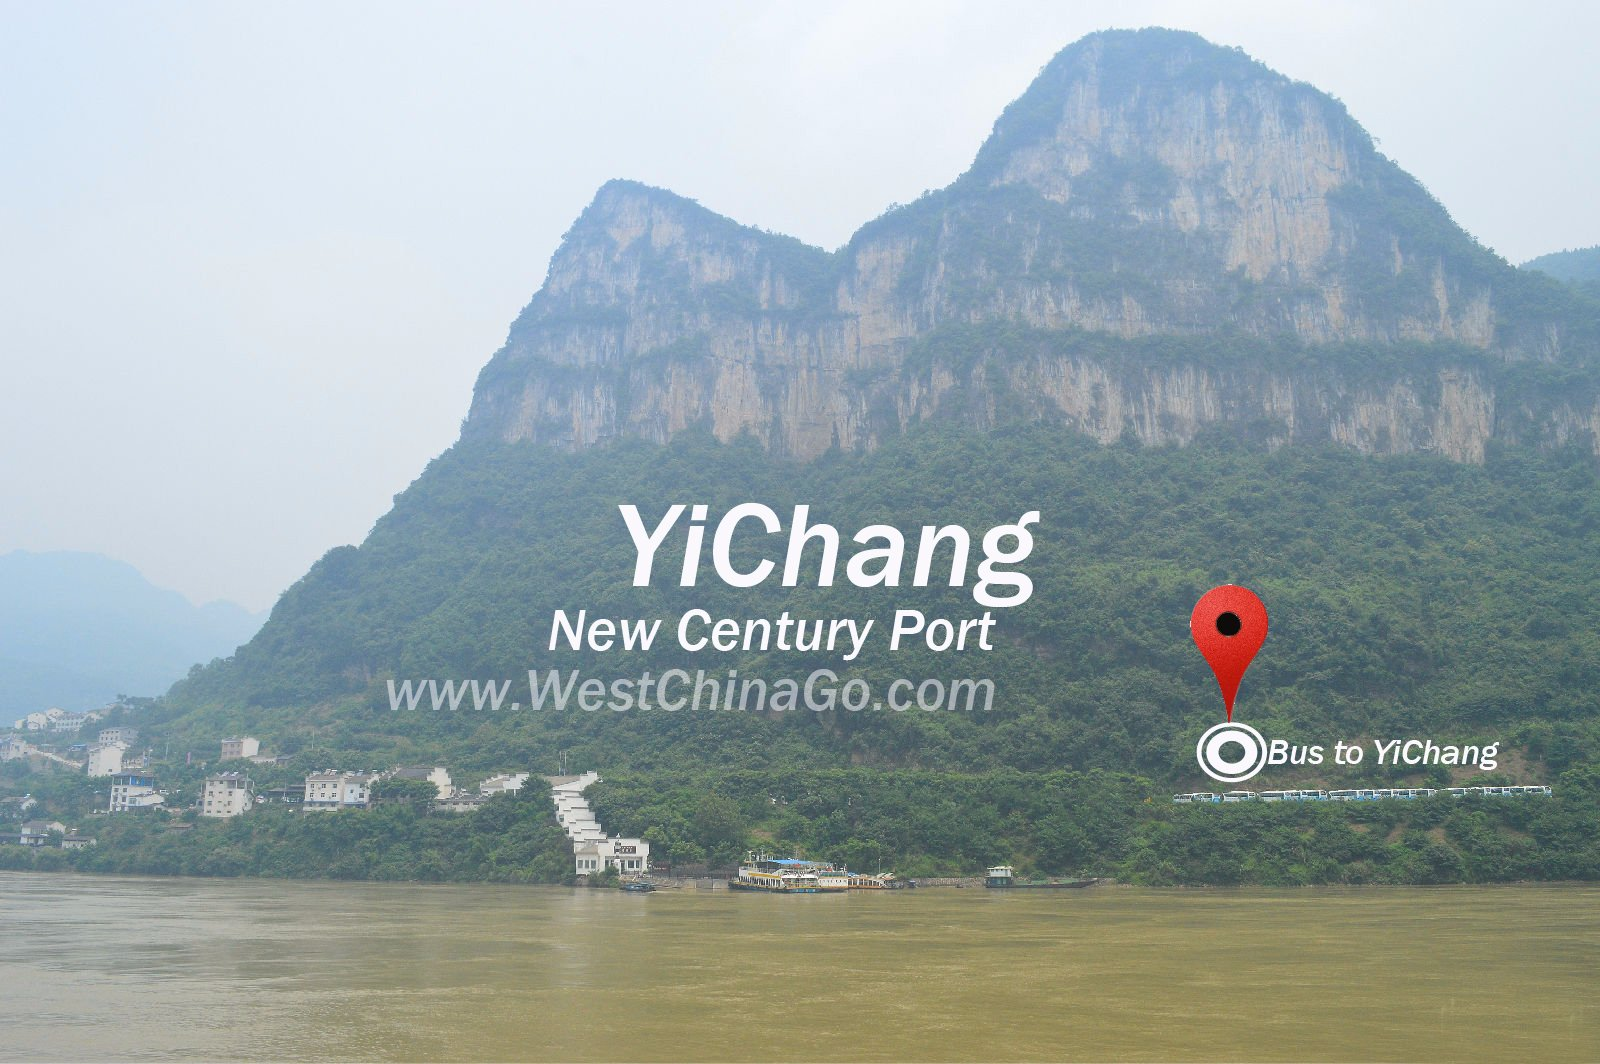 How to get to yichang port from airport and high-speed train station